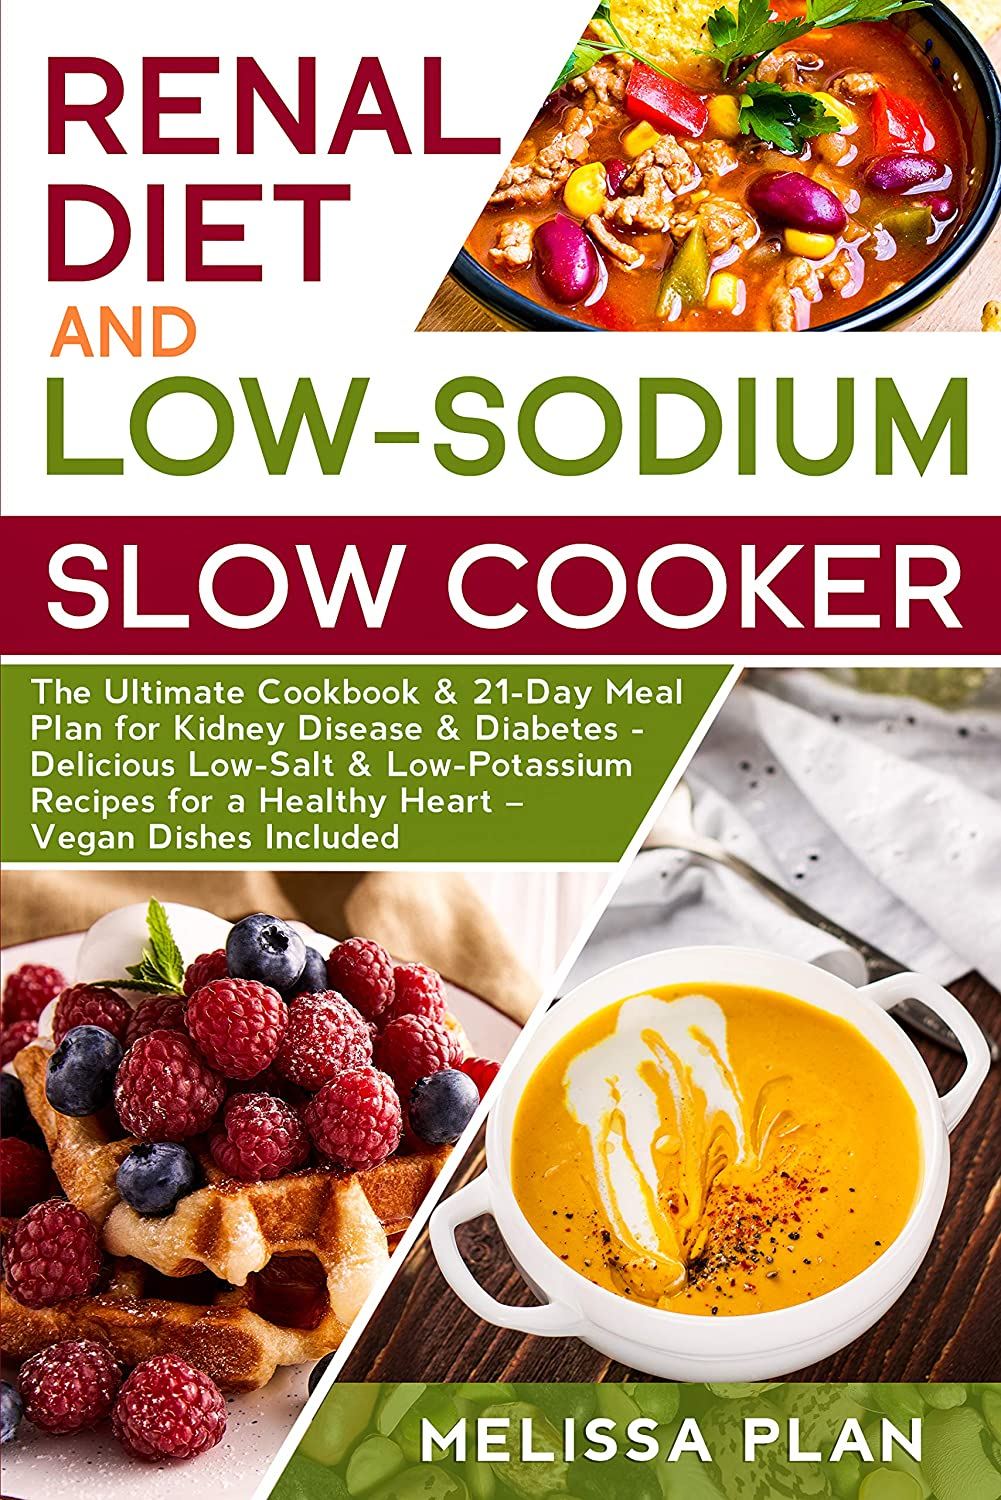 RENAL DIET and LOW-SODIUM SLOW COOKER: The Ultimate Cookbook & 21-Day Meal  Plan for Kidney Disease & Diabetes - Delicious Low-Salt & Low-Potassium  Recipes for a Healthy Heart – Vegan Dishes Included -